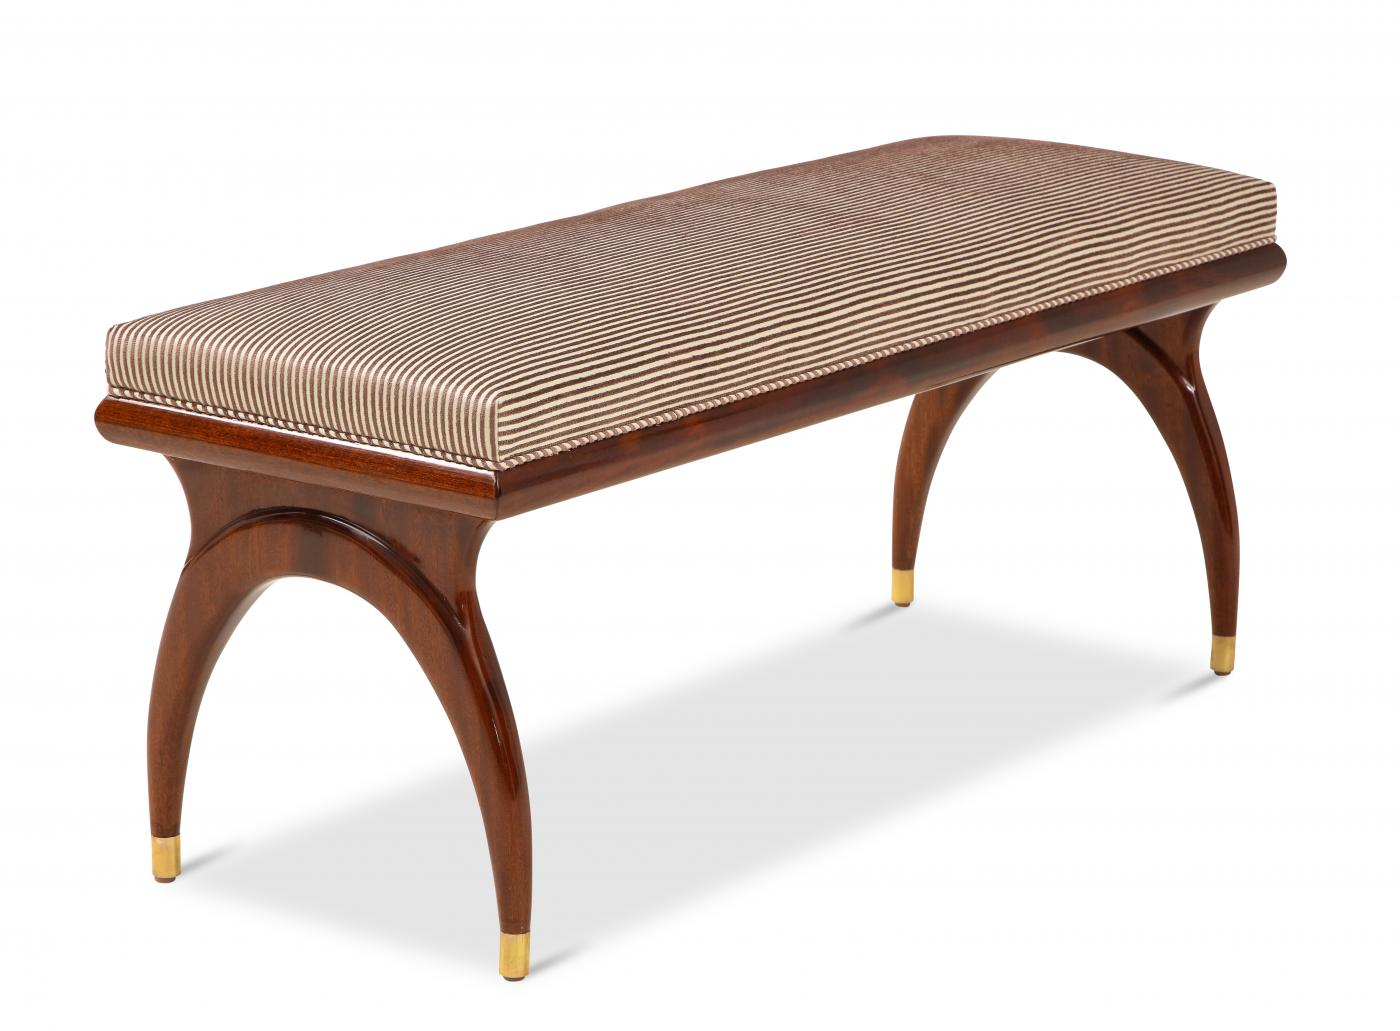 Contemporary Bench in the Manner of Bertha Schaefer